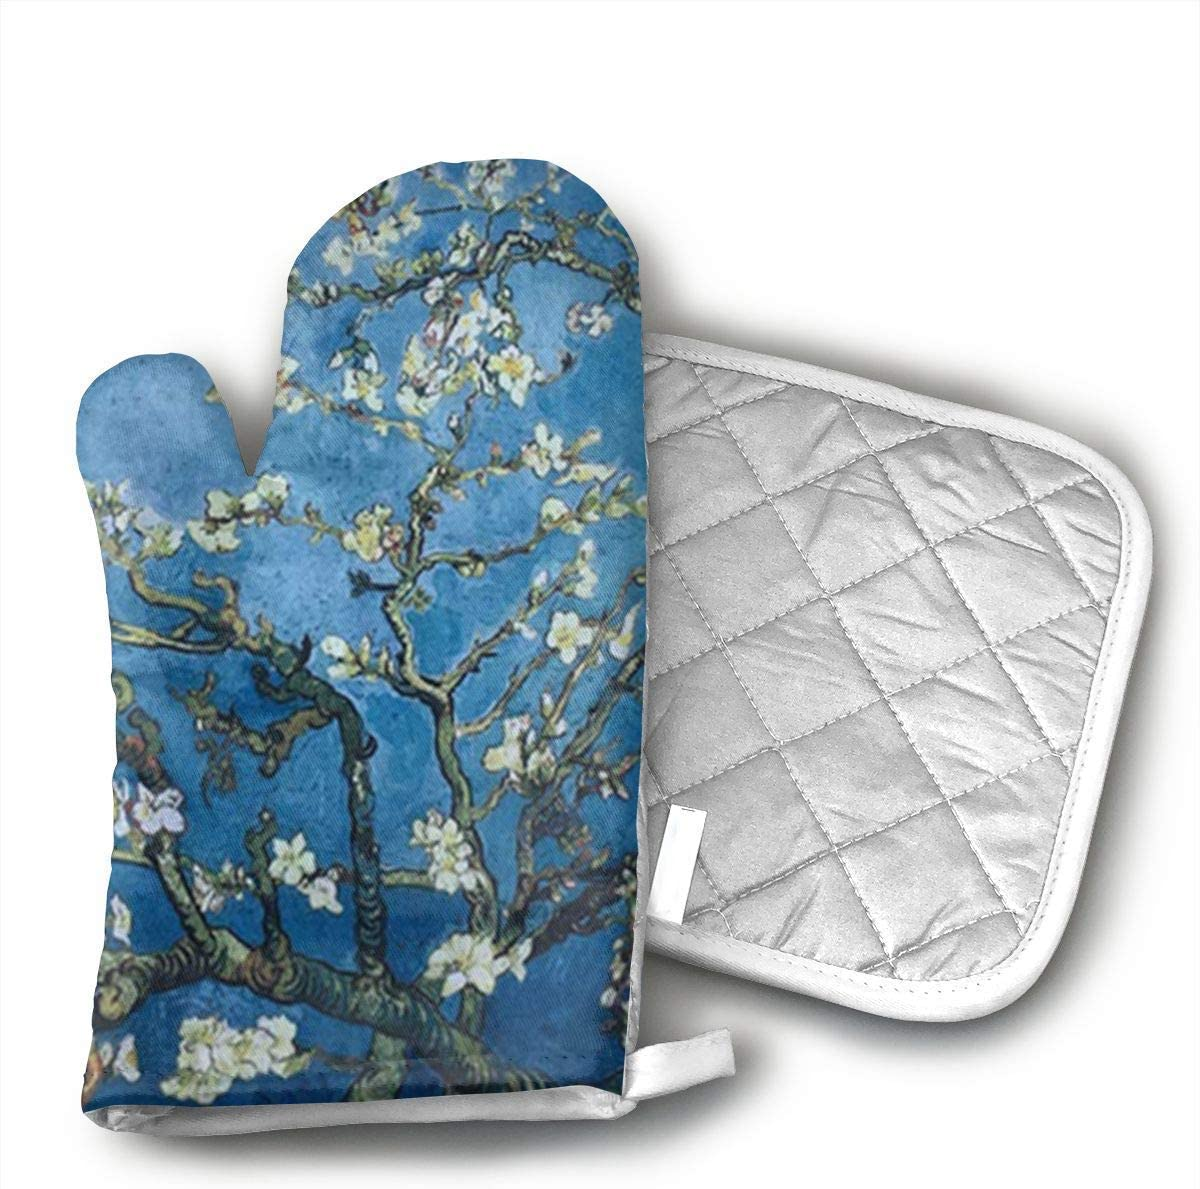 Almond Blossoms Vincent Van Gogh Oven Mitts and Pot Holders Set with Polyester Cotton Non-Slip Grip, Heat Resistant, Oven Gloves for BBQ Cooking Baking, Grilling